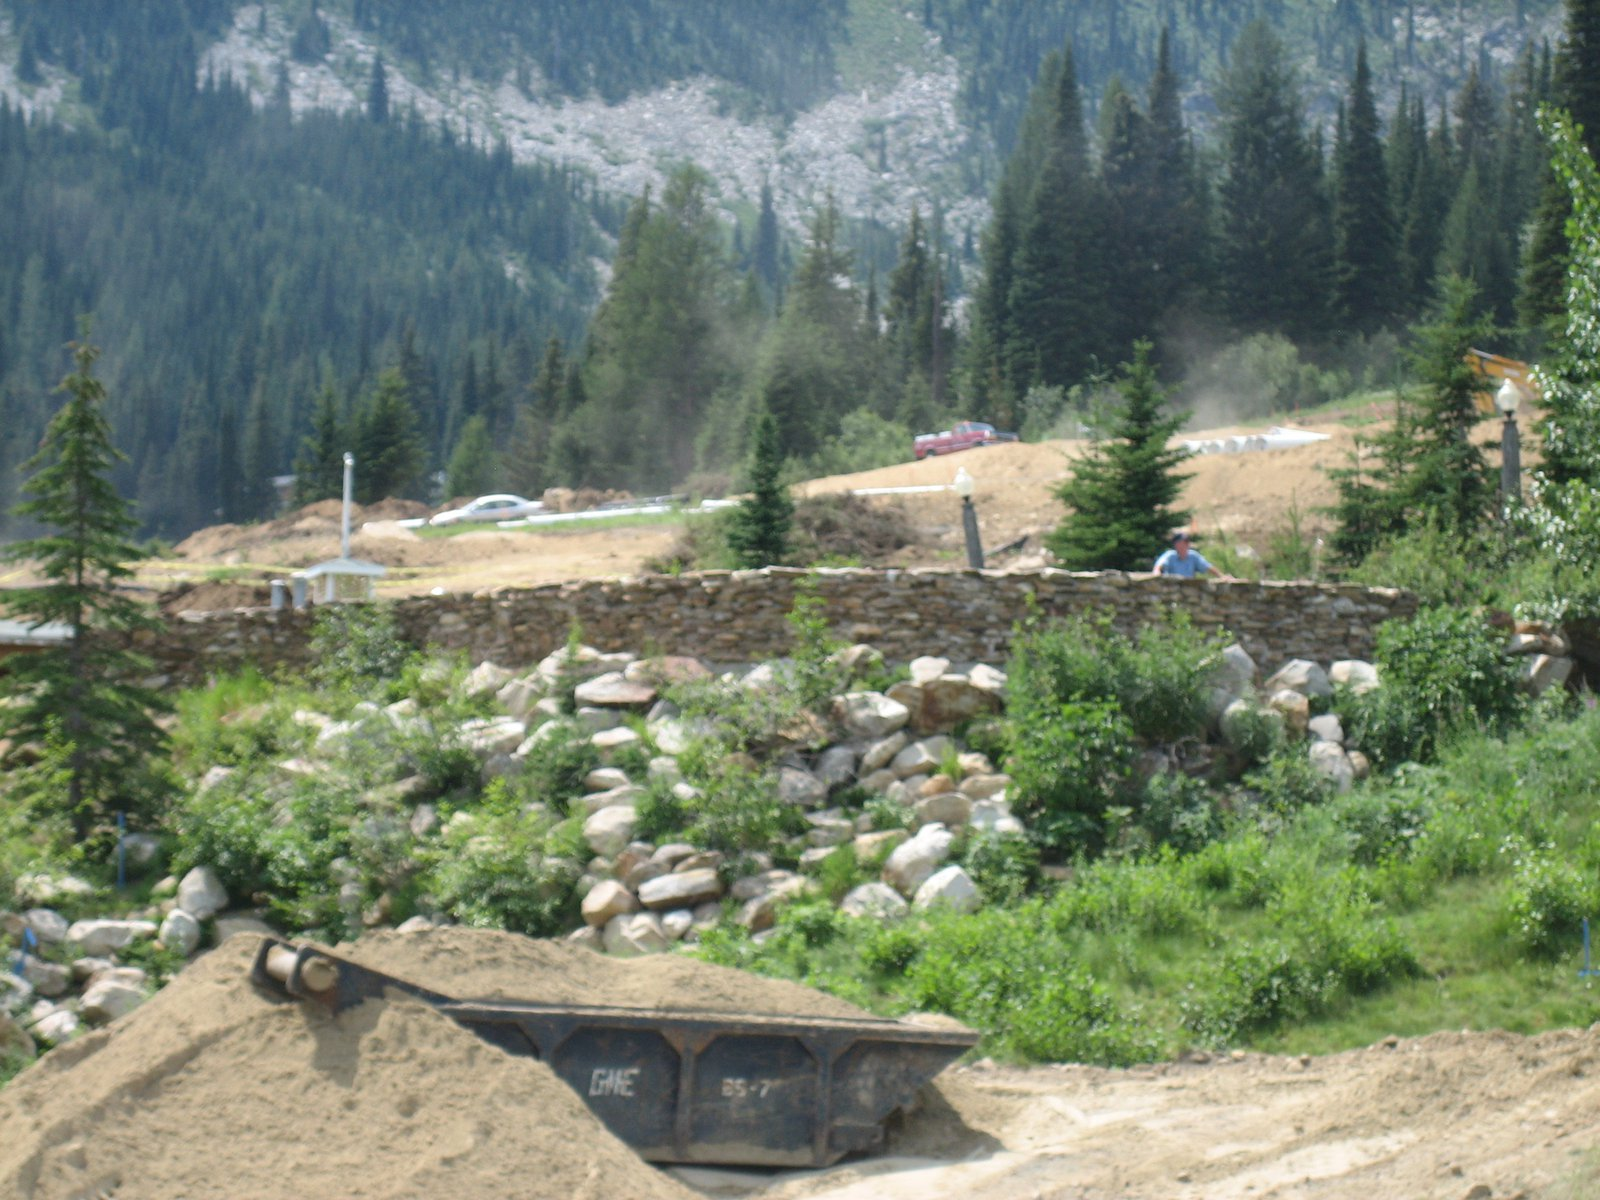 Construction at Schweitzer Mountain Resort, Summer 2007 - 2 of 8